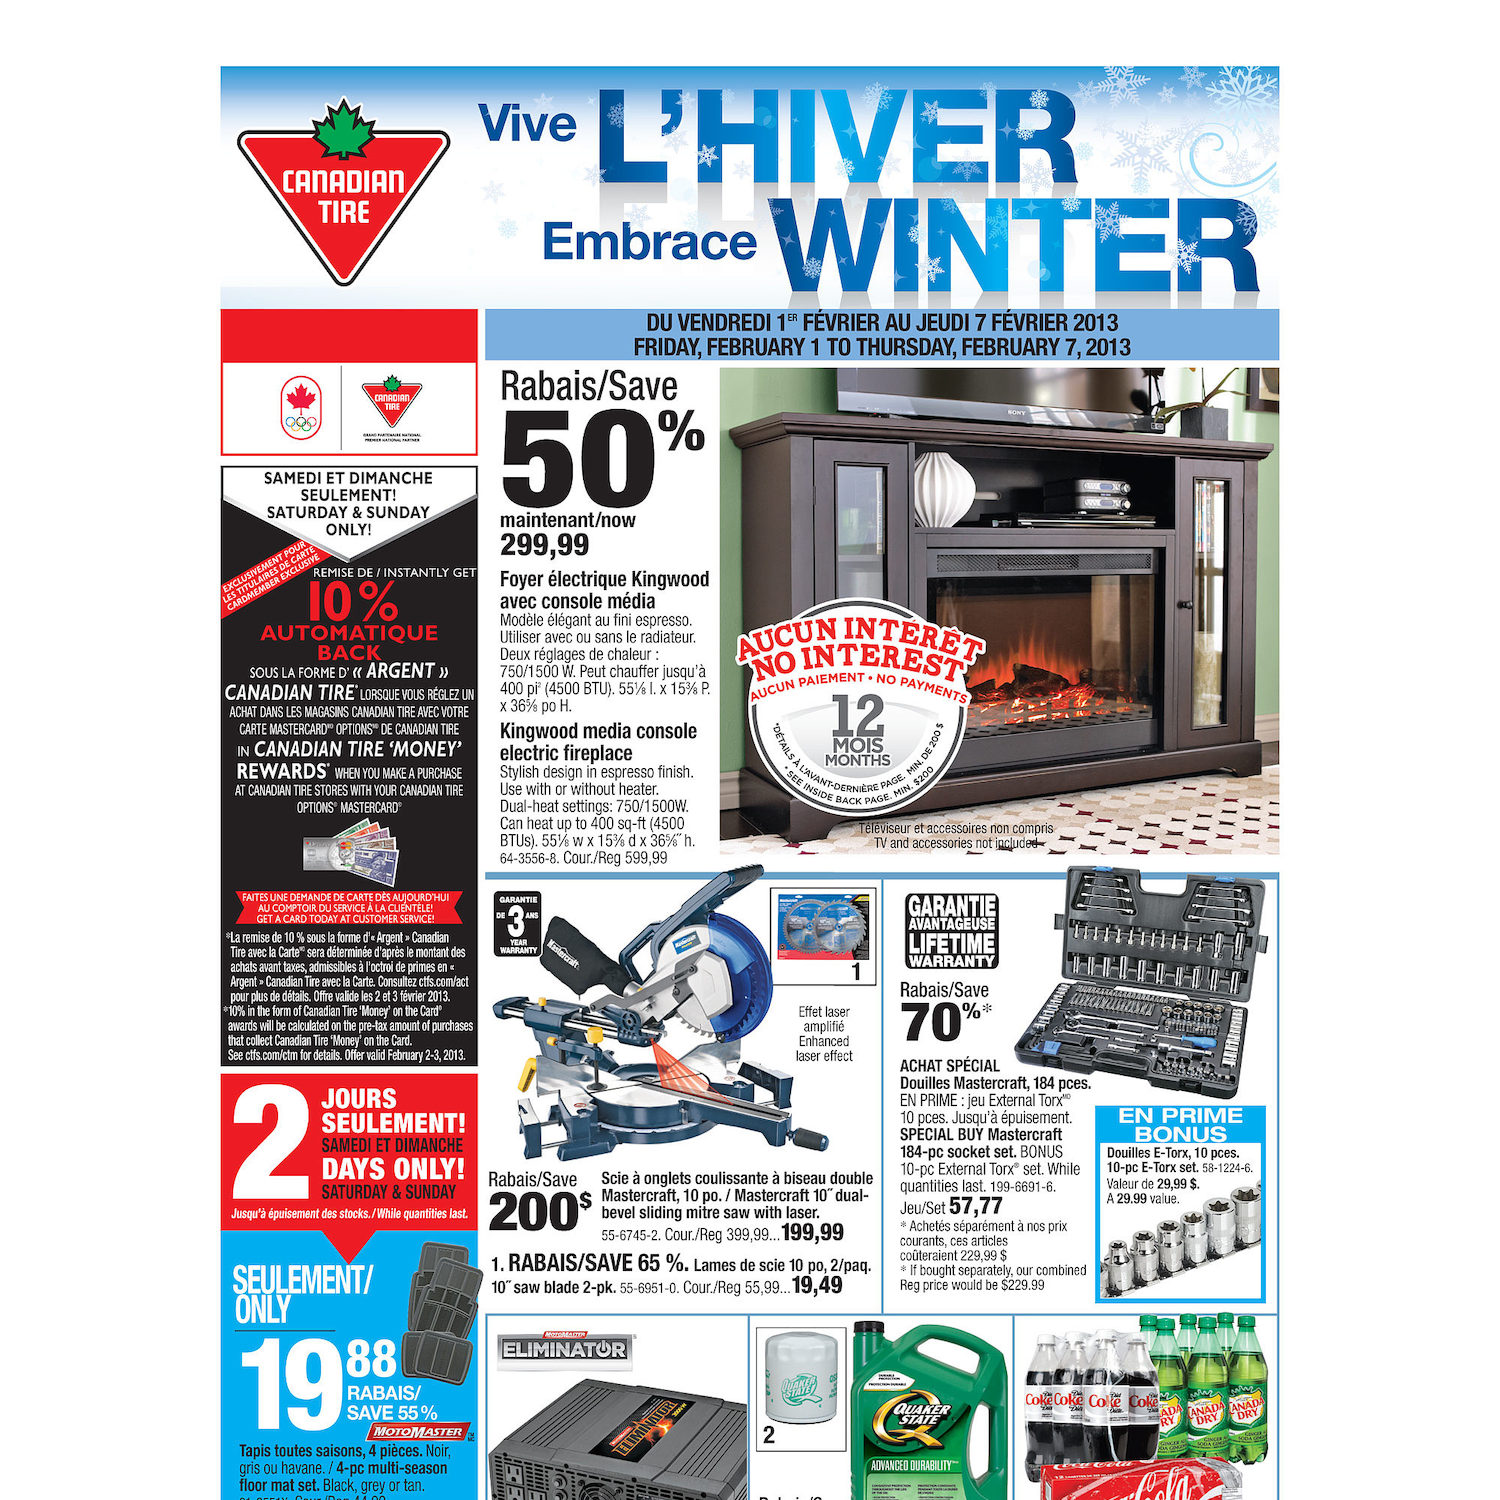 Canadian Tire Weekly Flyer Weekly Flyer Jan 31 Feb 7